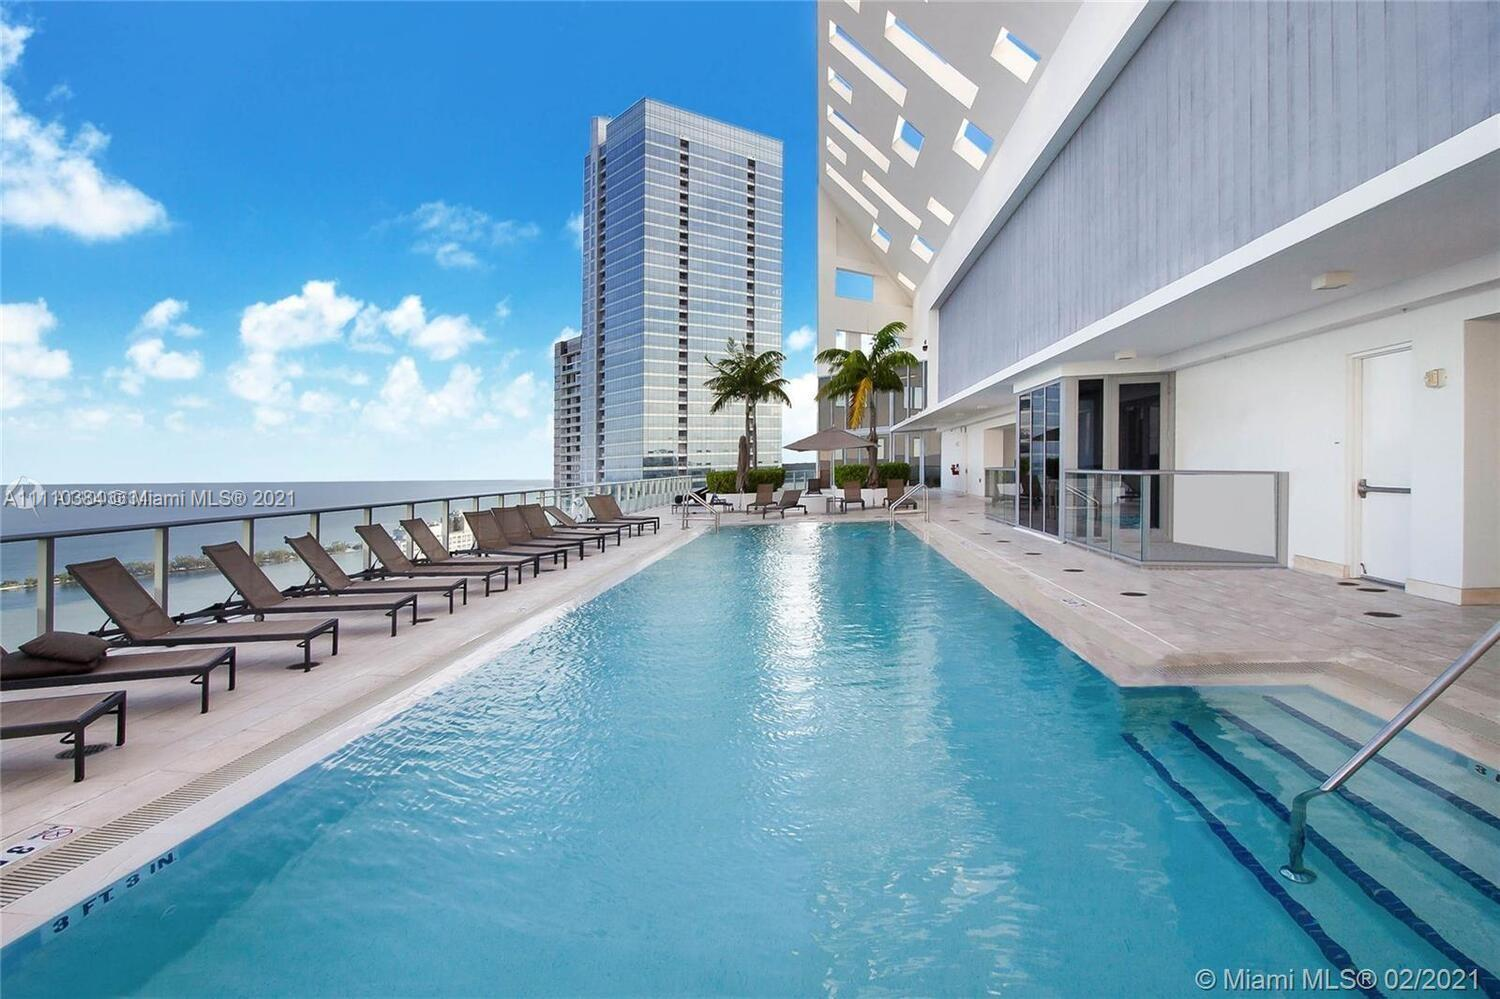 Brickell House offers its residents a number of fabulous amenities, including a rooftop pool and sun